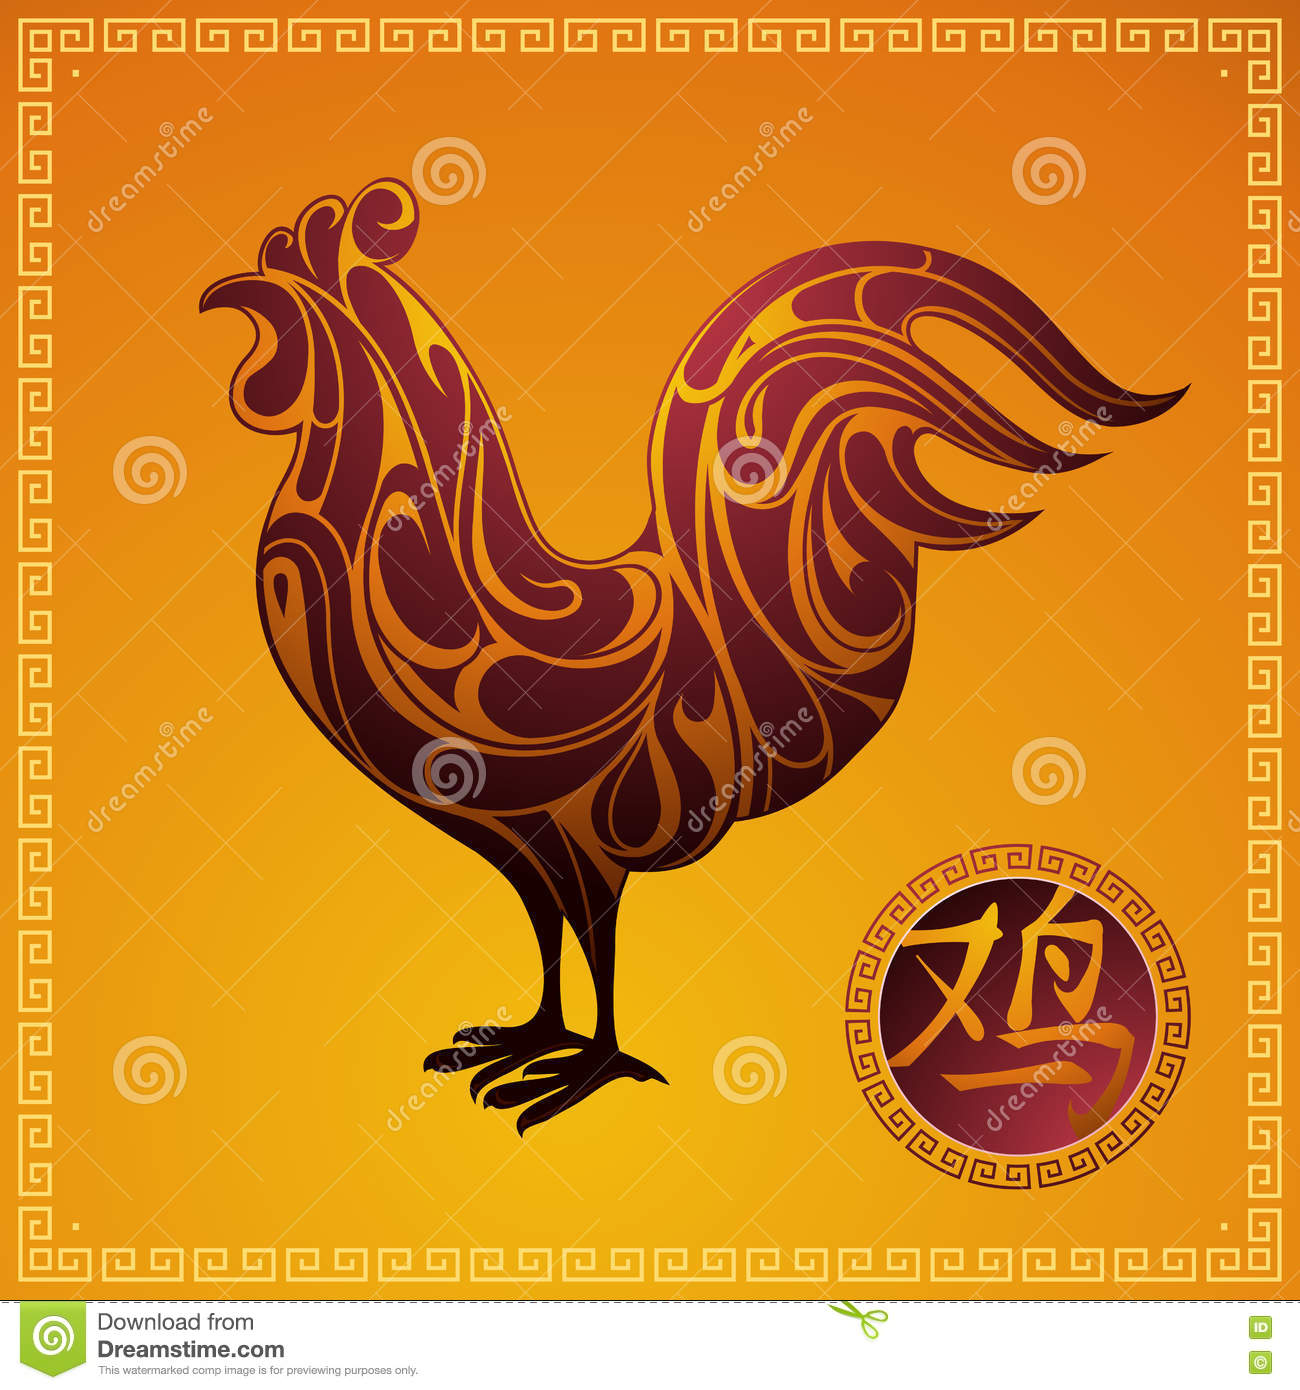 Chinese New Year 2017 Rooster Horoscope Symbol Stock Vector Image 72186552